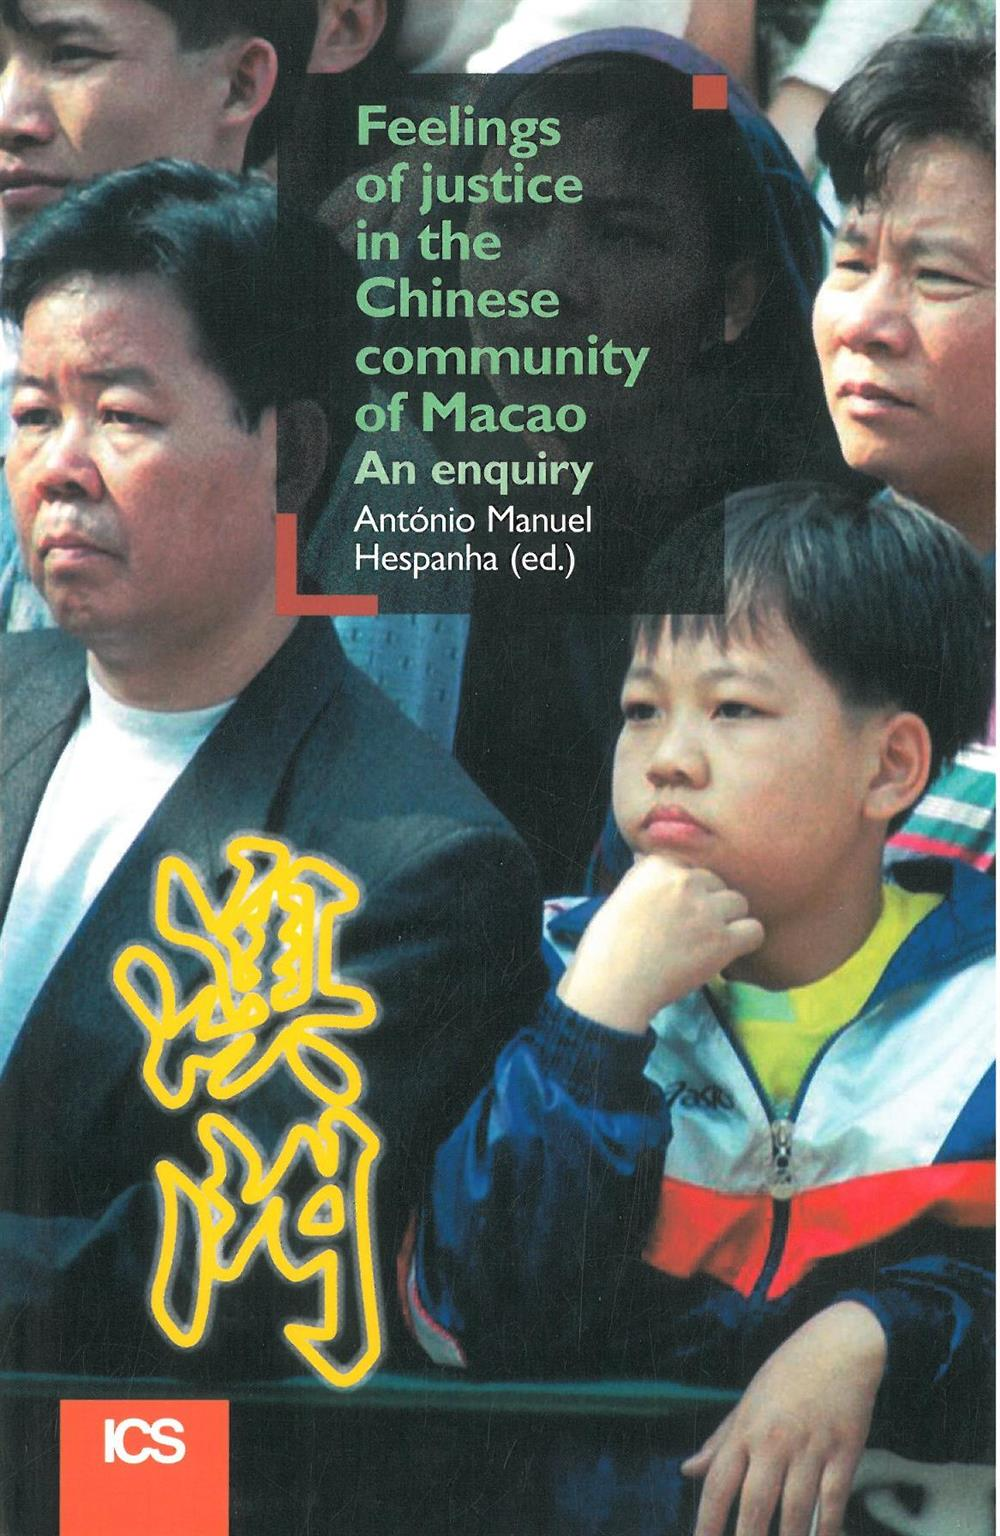 Feelings of justice in the chinese community of Macao.jpg